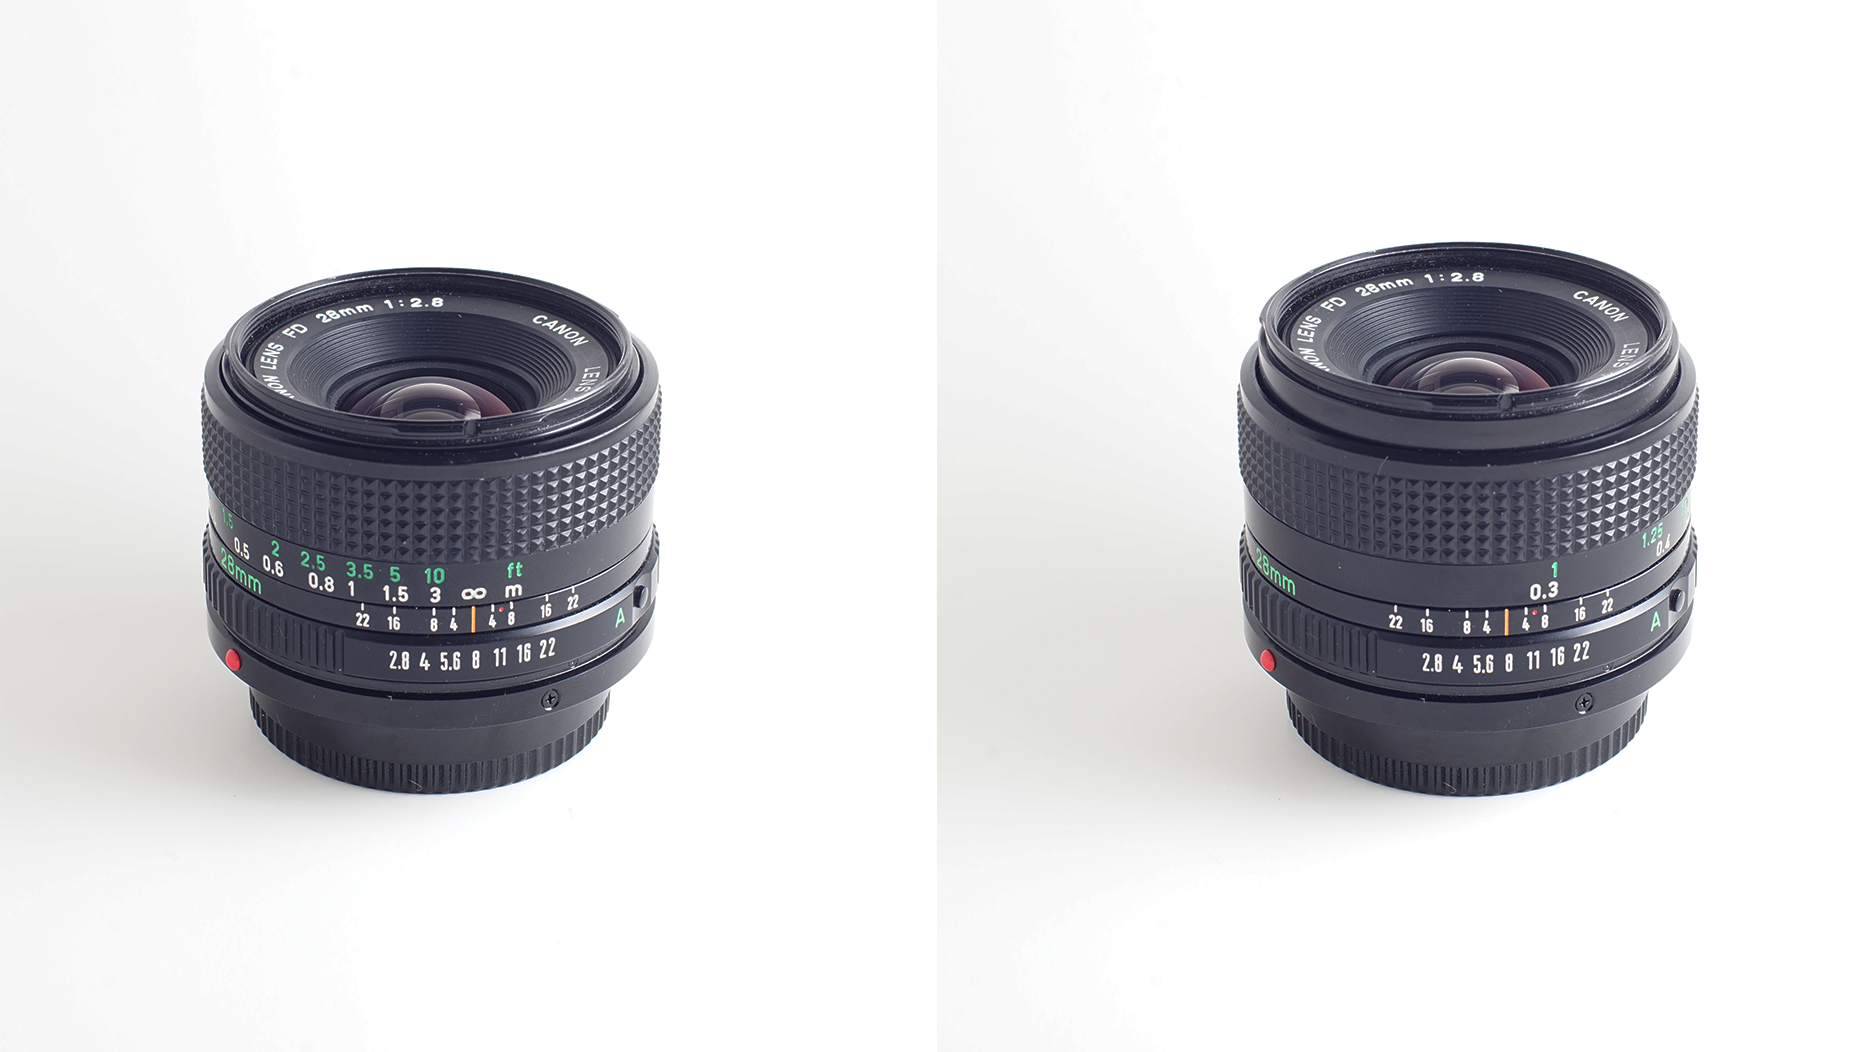 The Canon nFD 28mm fully retracted versus extended. There is very little difference with this lens.